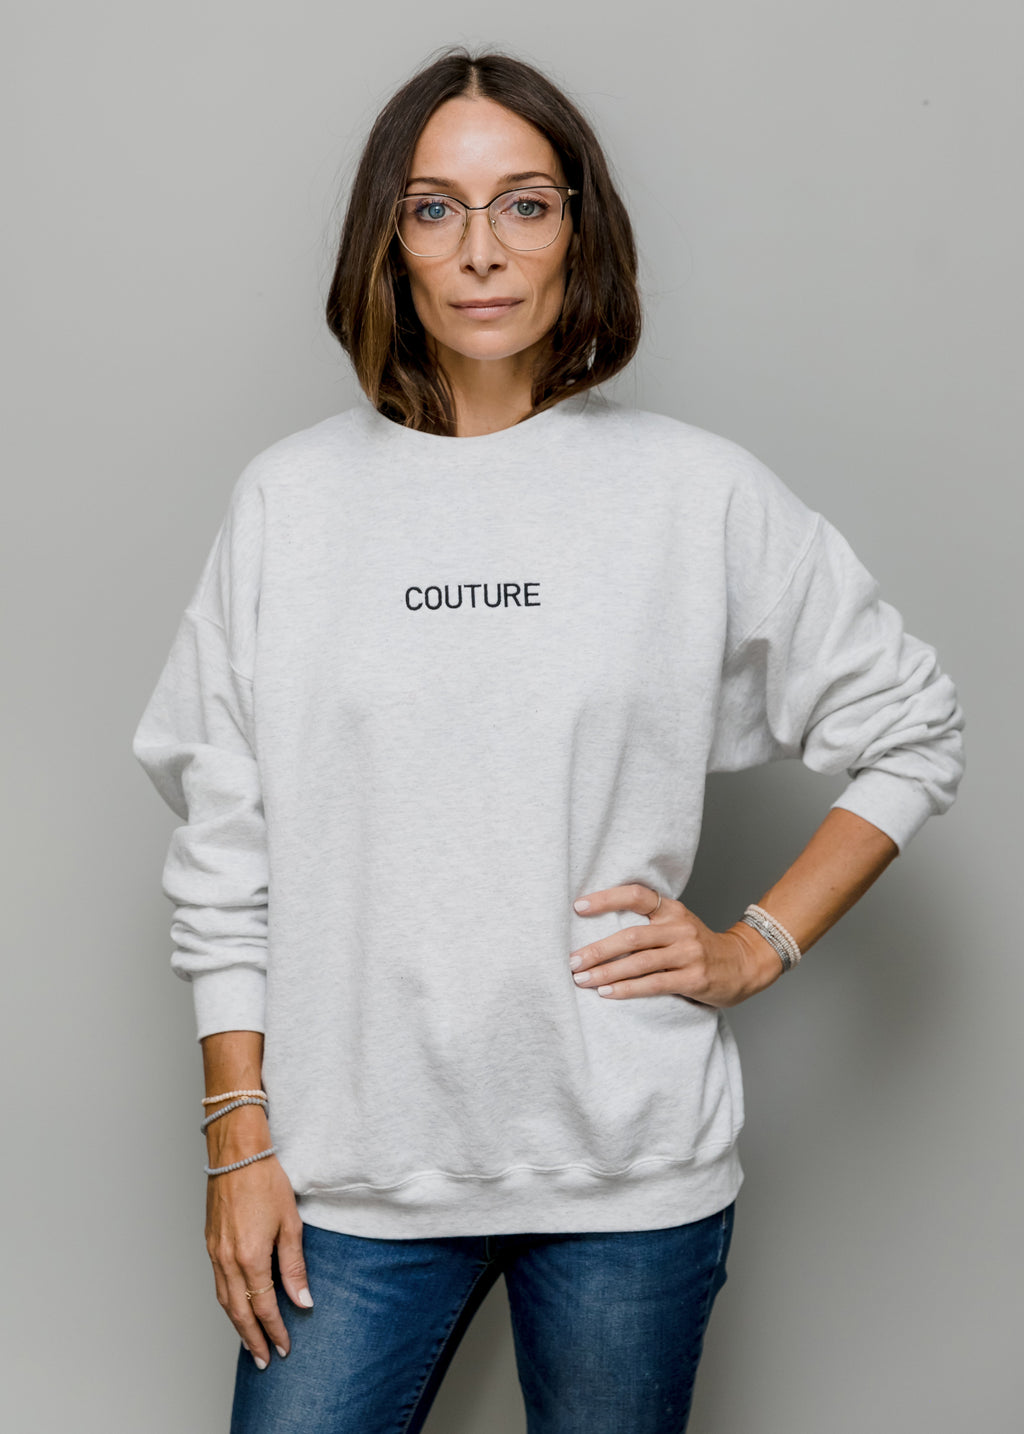 Couture Sweater